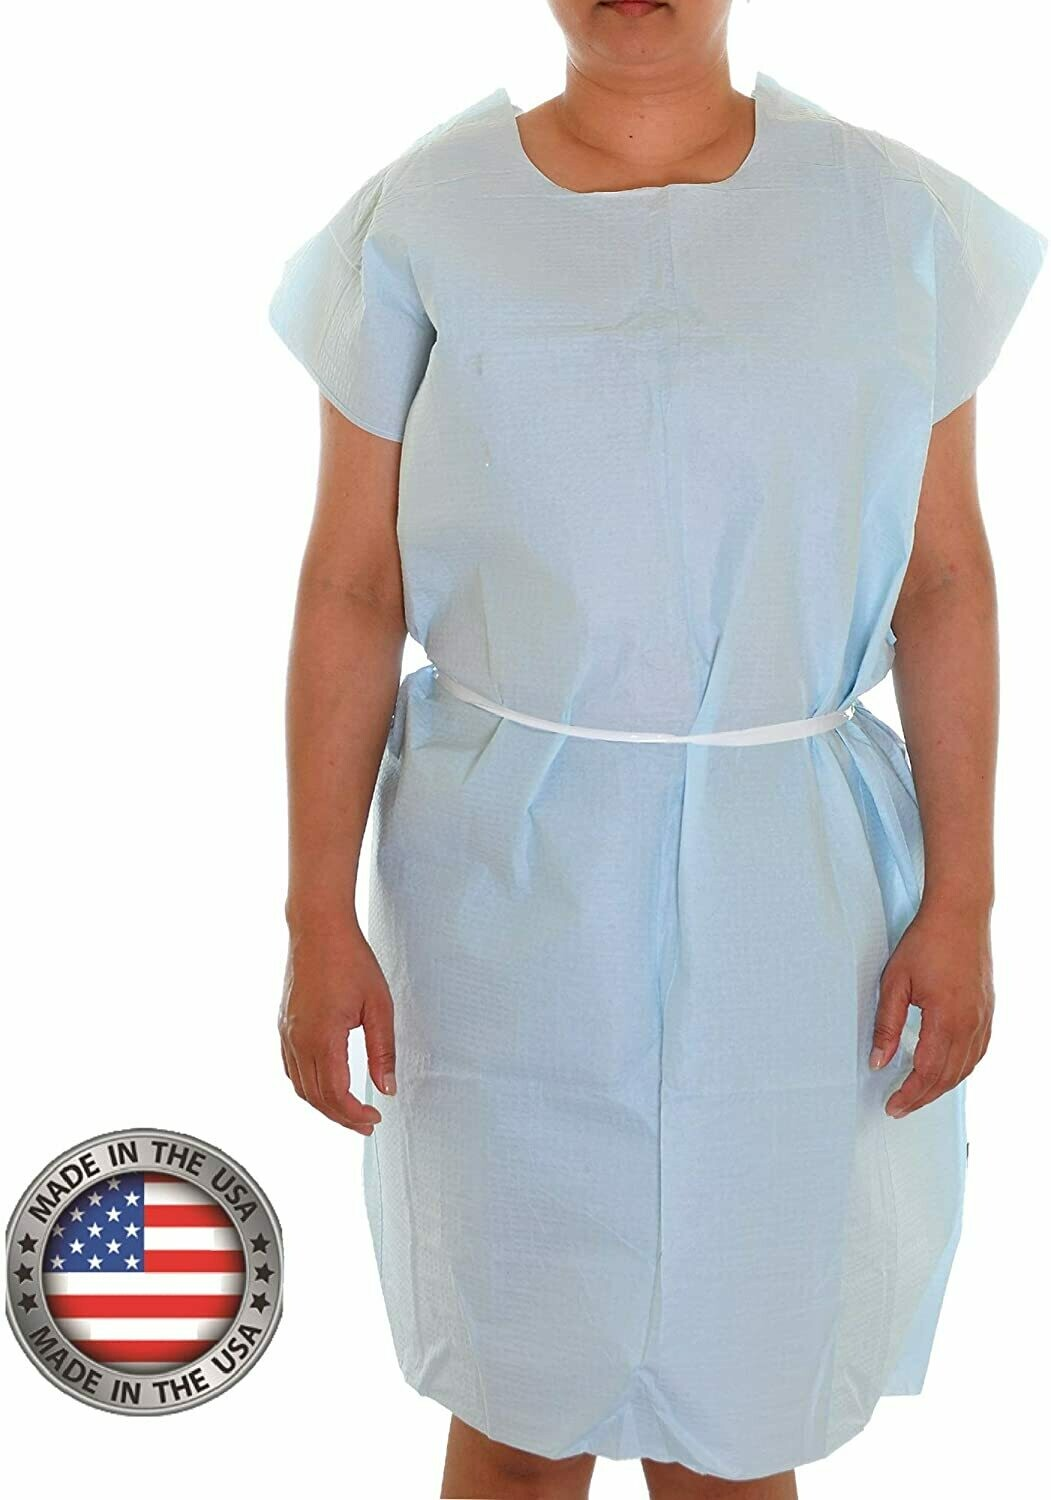 Patient Exam Gowns, Tissue/Poly/Tissue 3-Ply, Latex-Free, Disposable, Universal, 30″ x 42″, Blue-(10/Box)